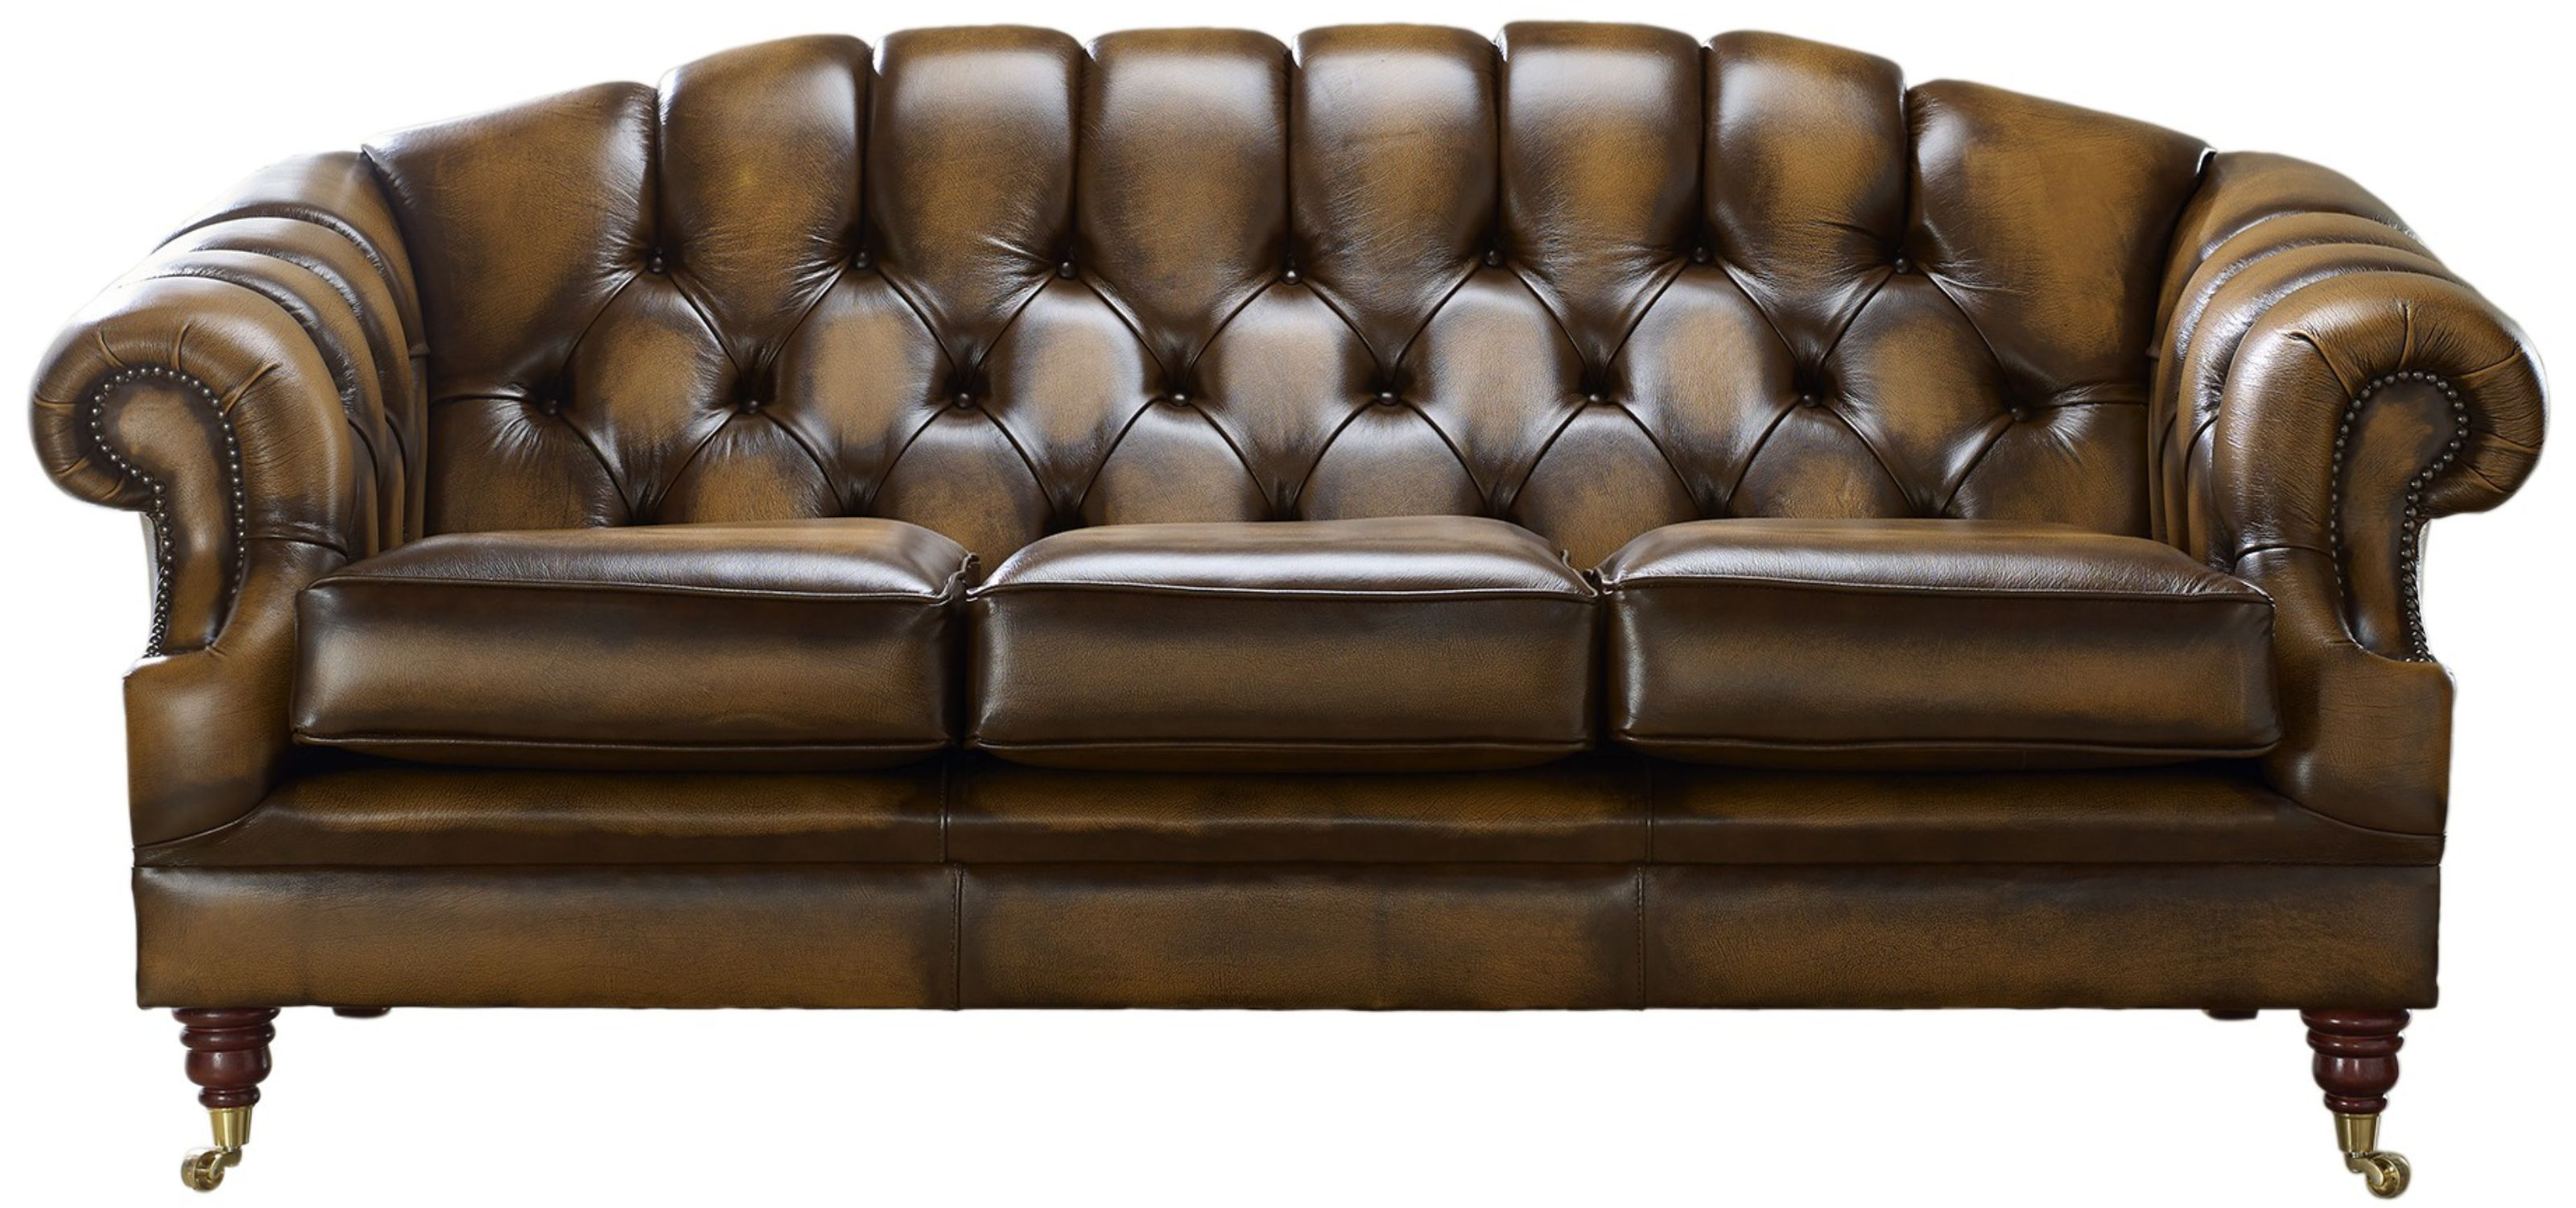 Chesterfield Victoria 3 Seater Leather Sofa Settee Antique Tan Leather